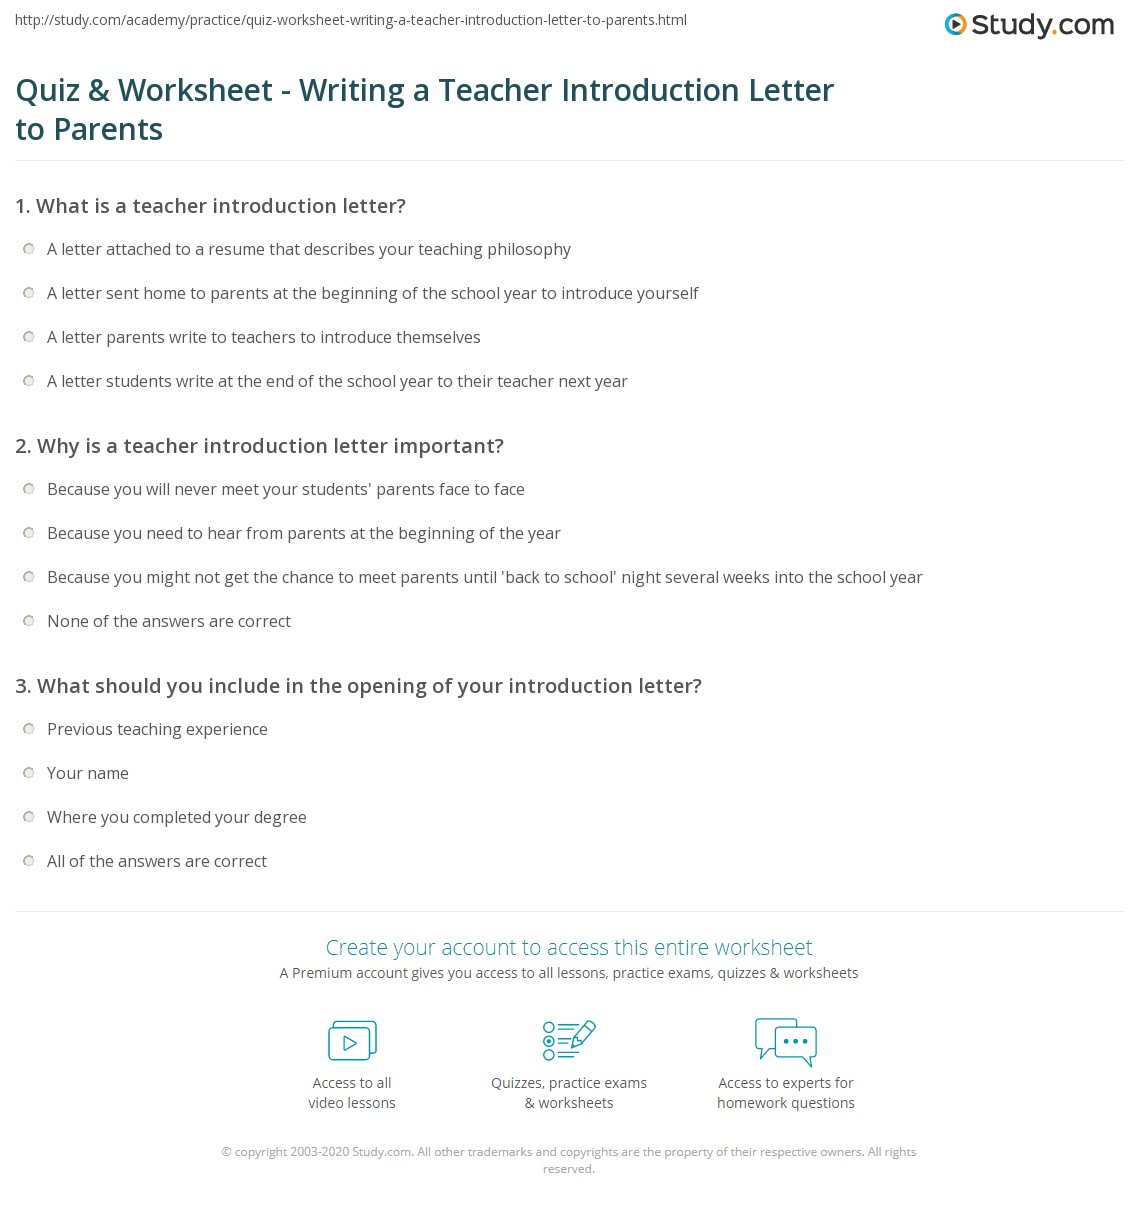 How To Write A Teacher Introduction Letter To Parents